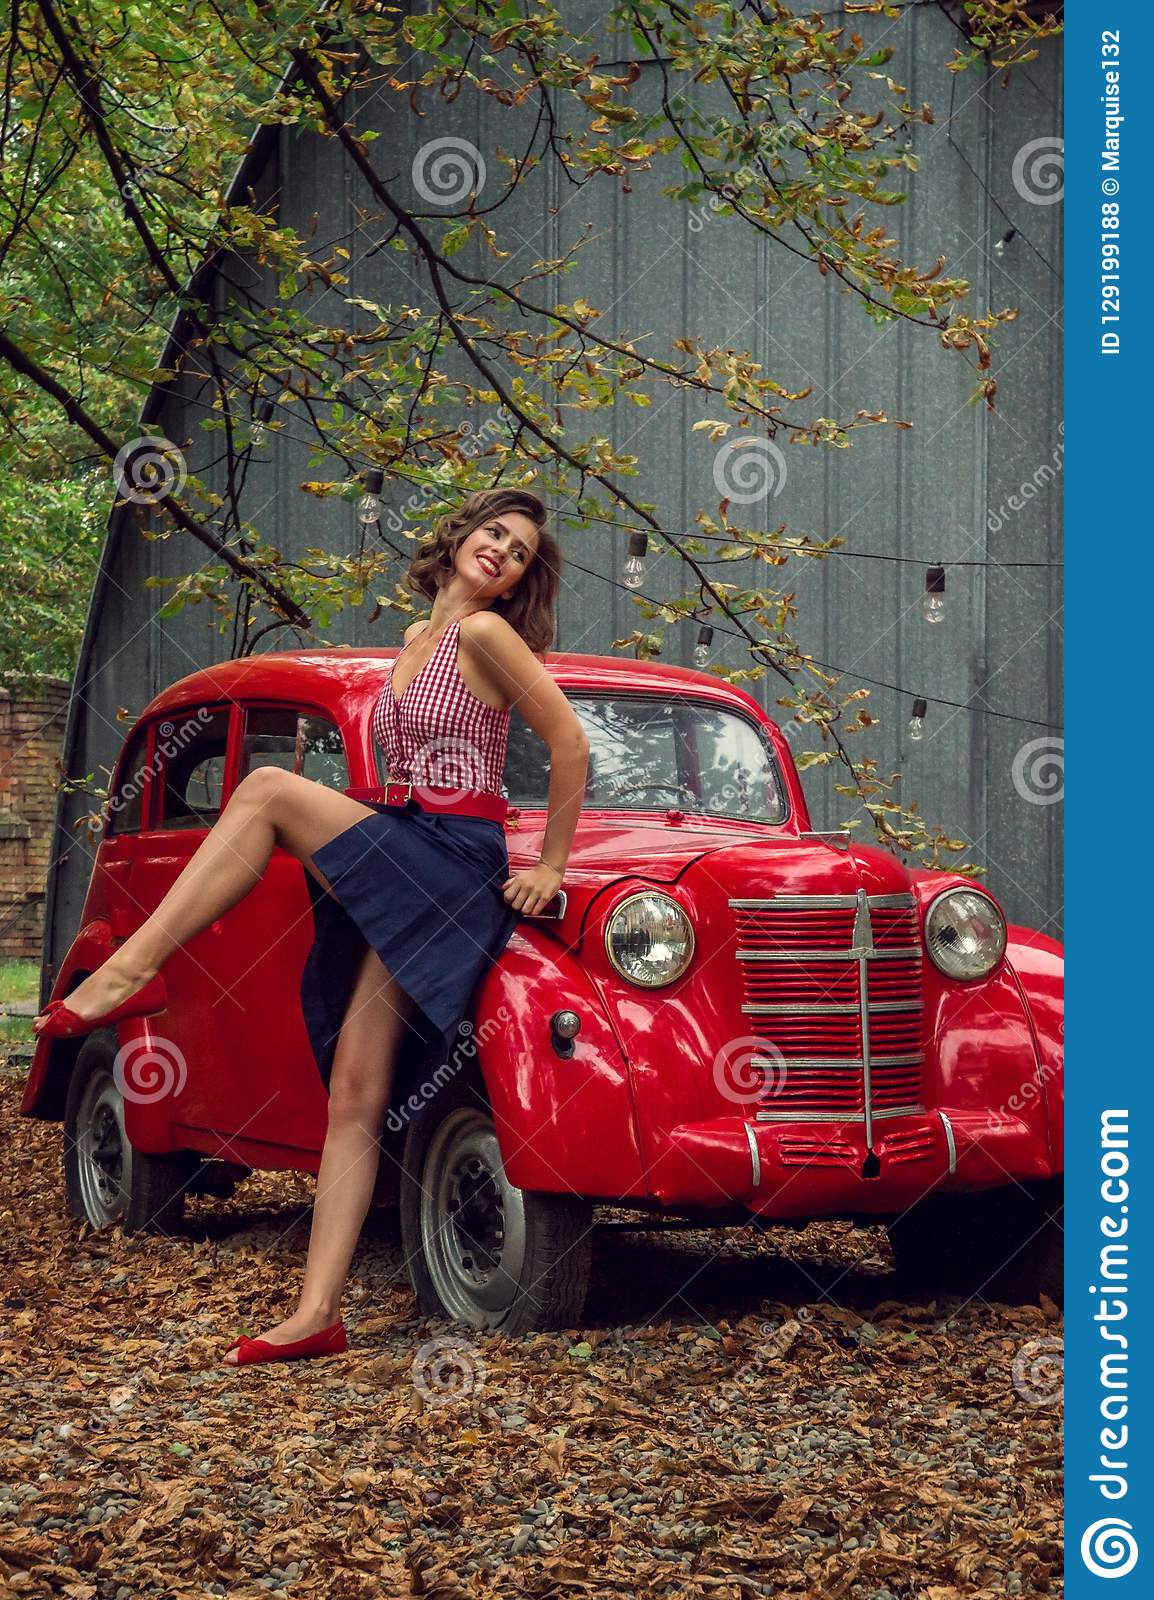 Emotional portrait. Pin-up girl posing near by a red russian retro car.The model laughs loudly, flirtatiously showing slender legs